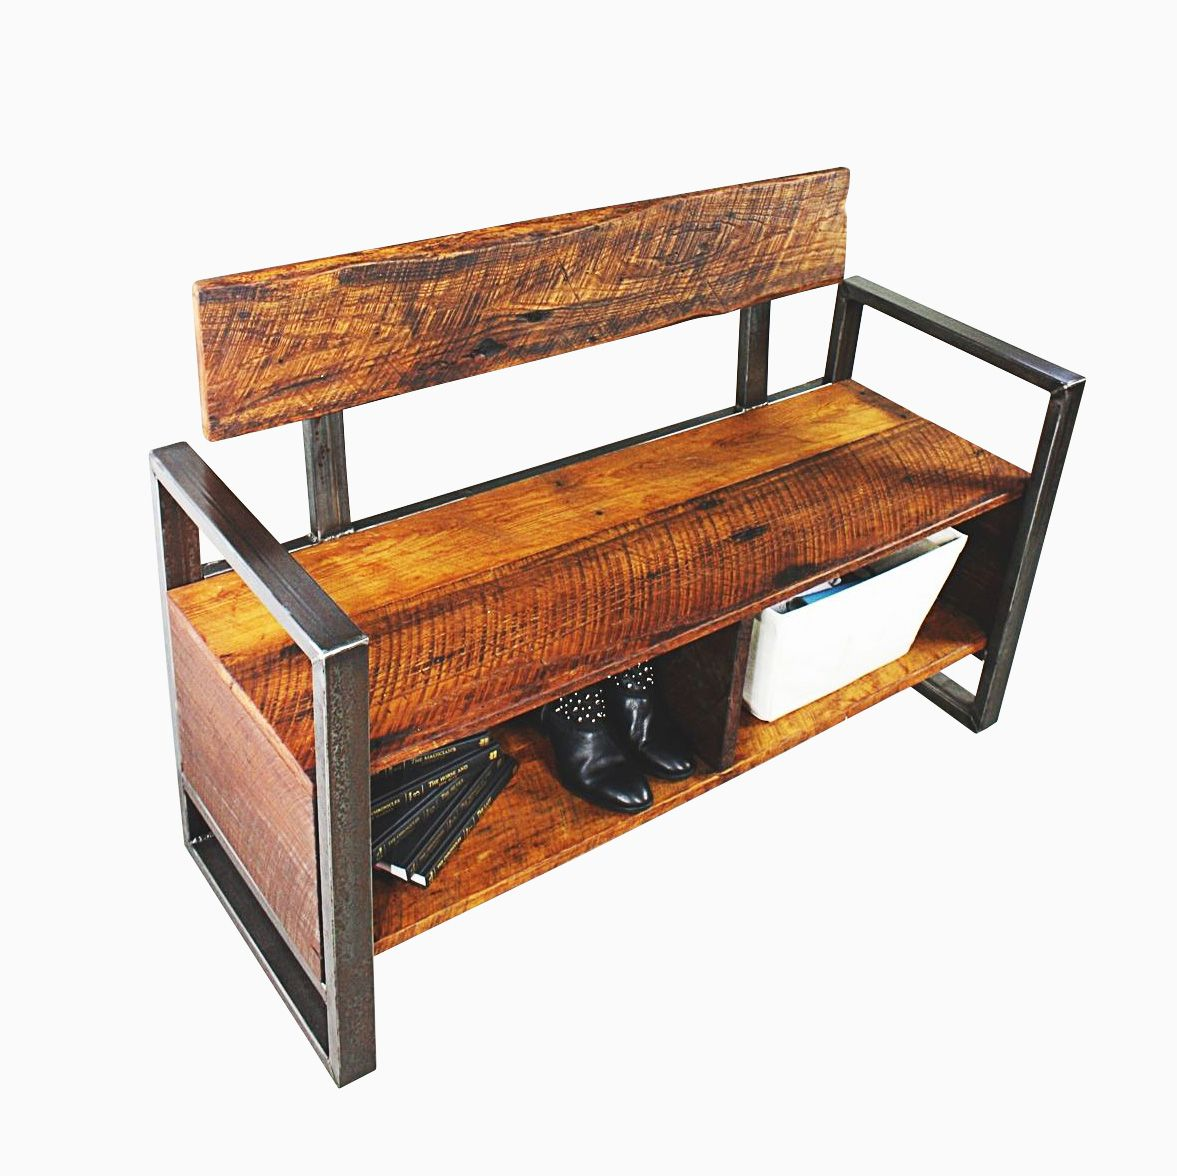 Foyer Seating Qatar : Buy a custom unique reclaimed wood storage foyer bench